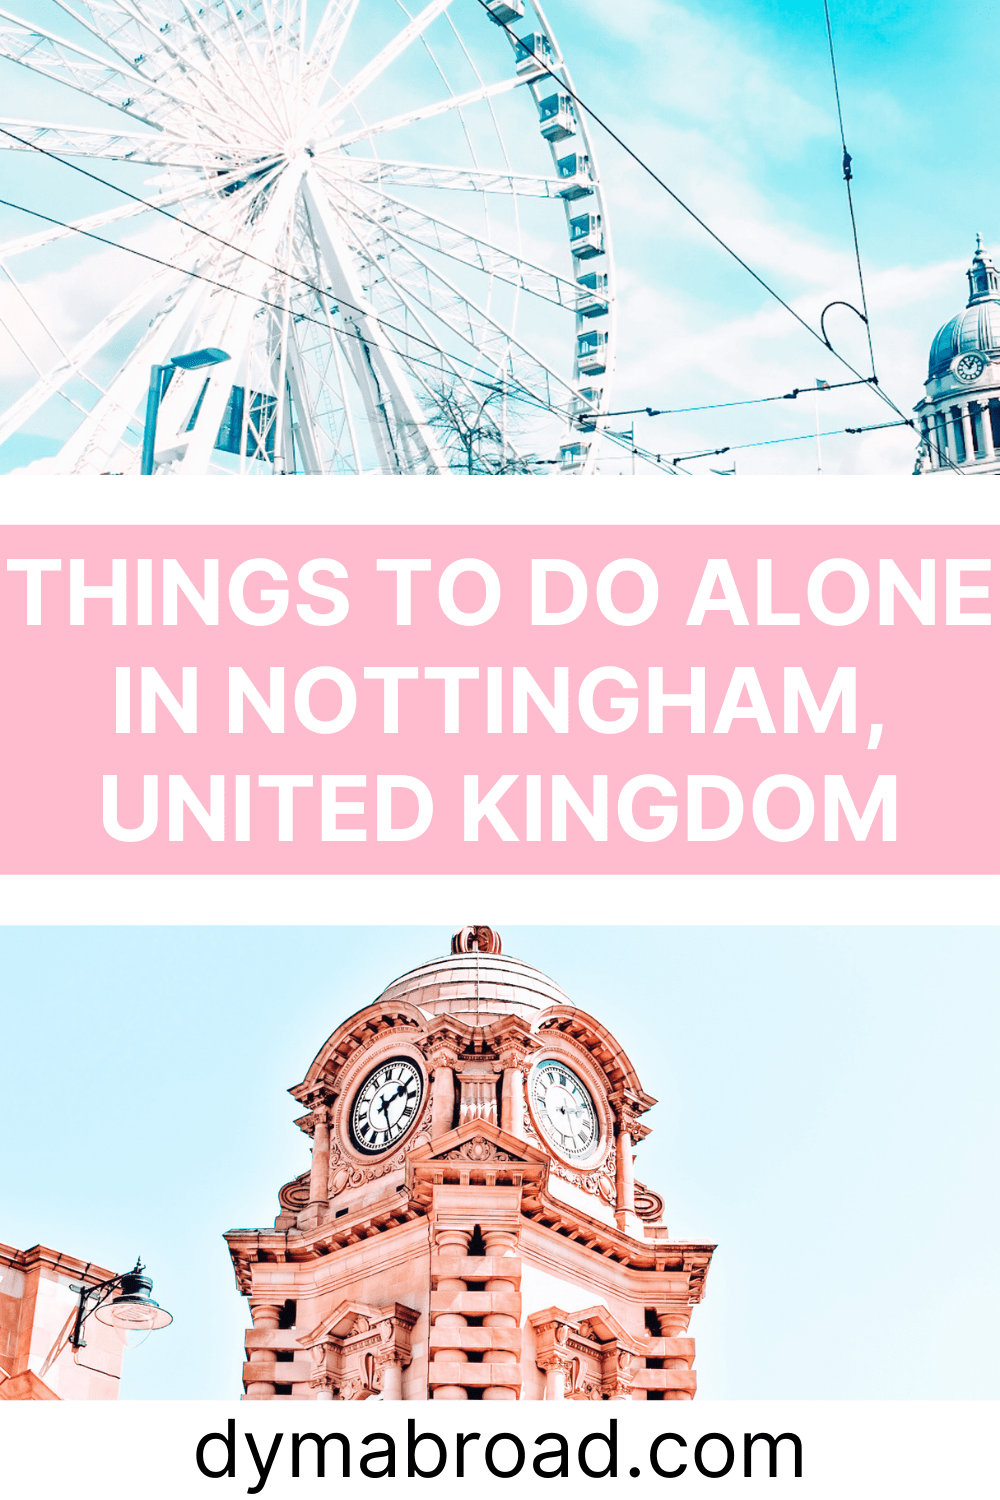 Things to do alone in Nottingham Pinterest image